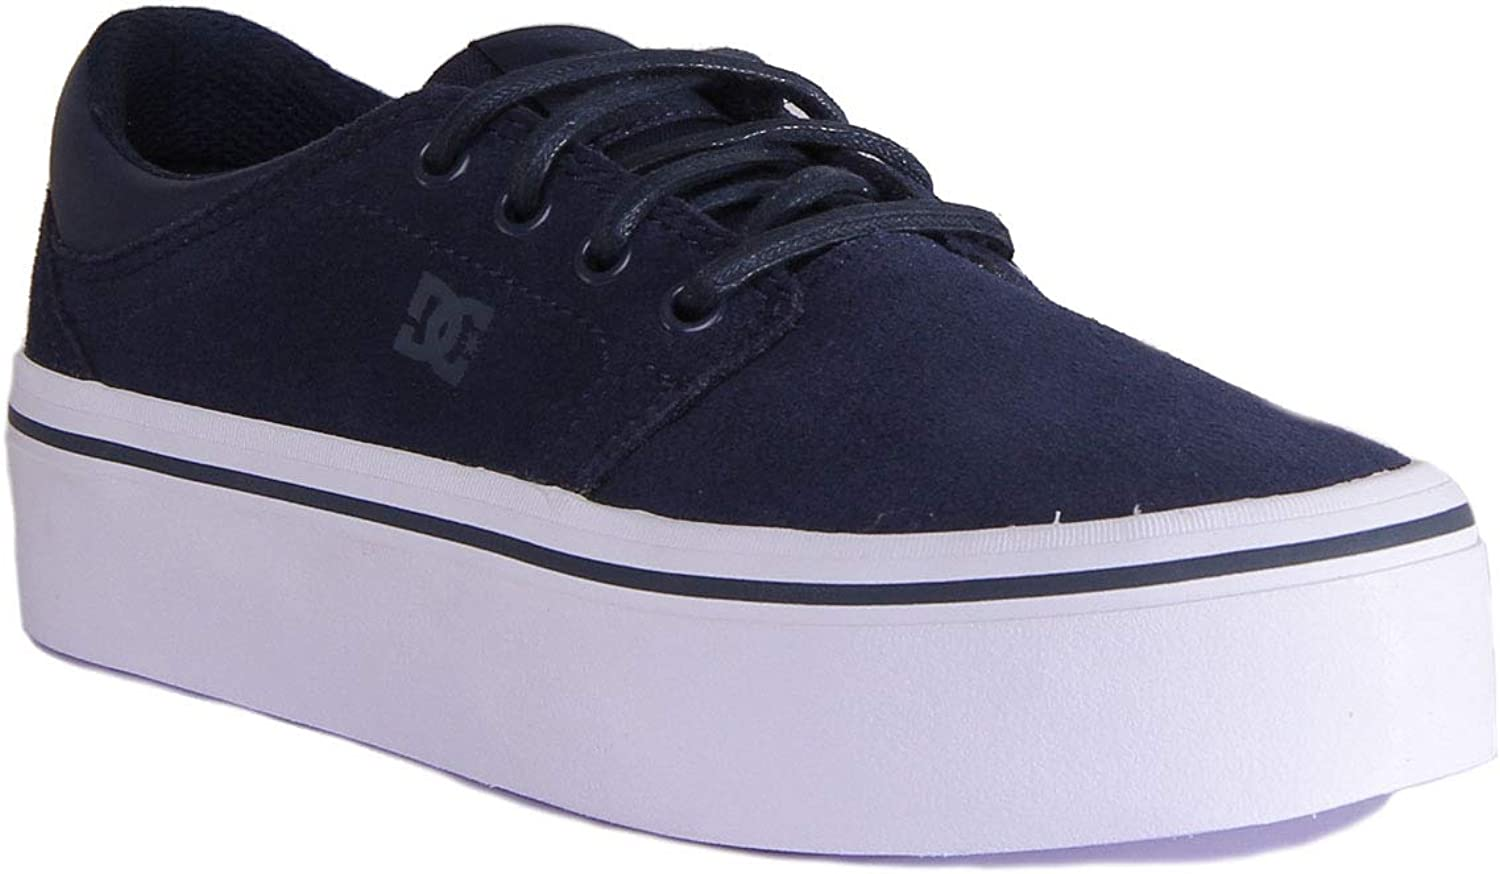 DC shoes Trase Platform Trainers in Navy